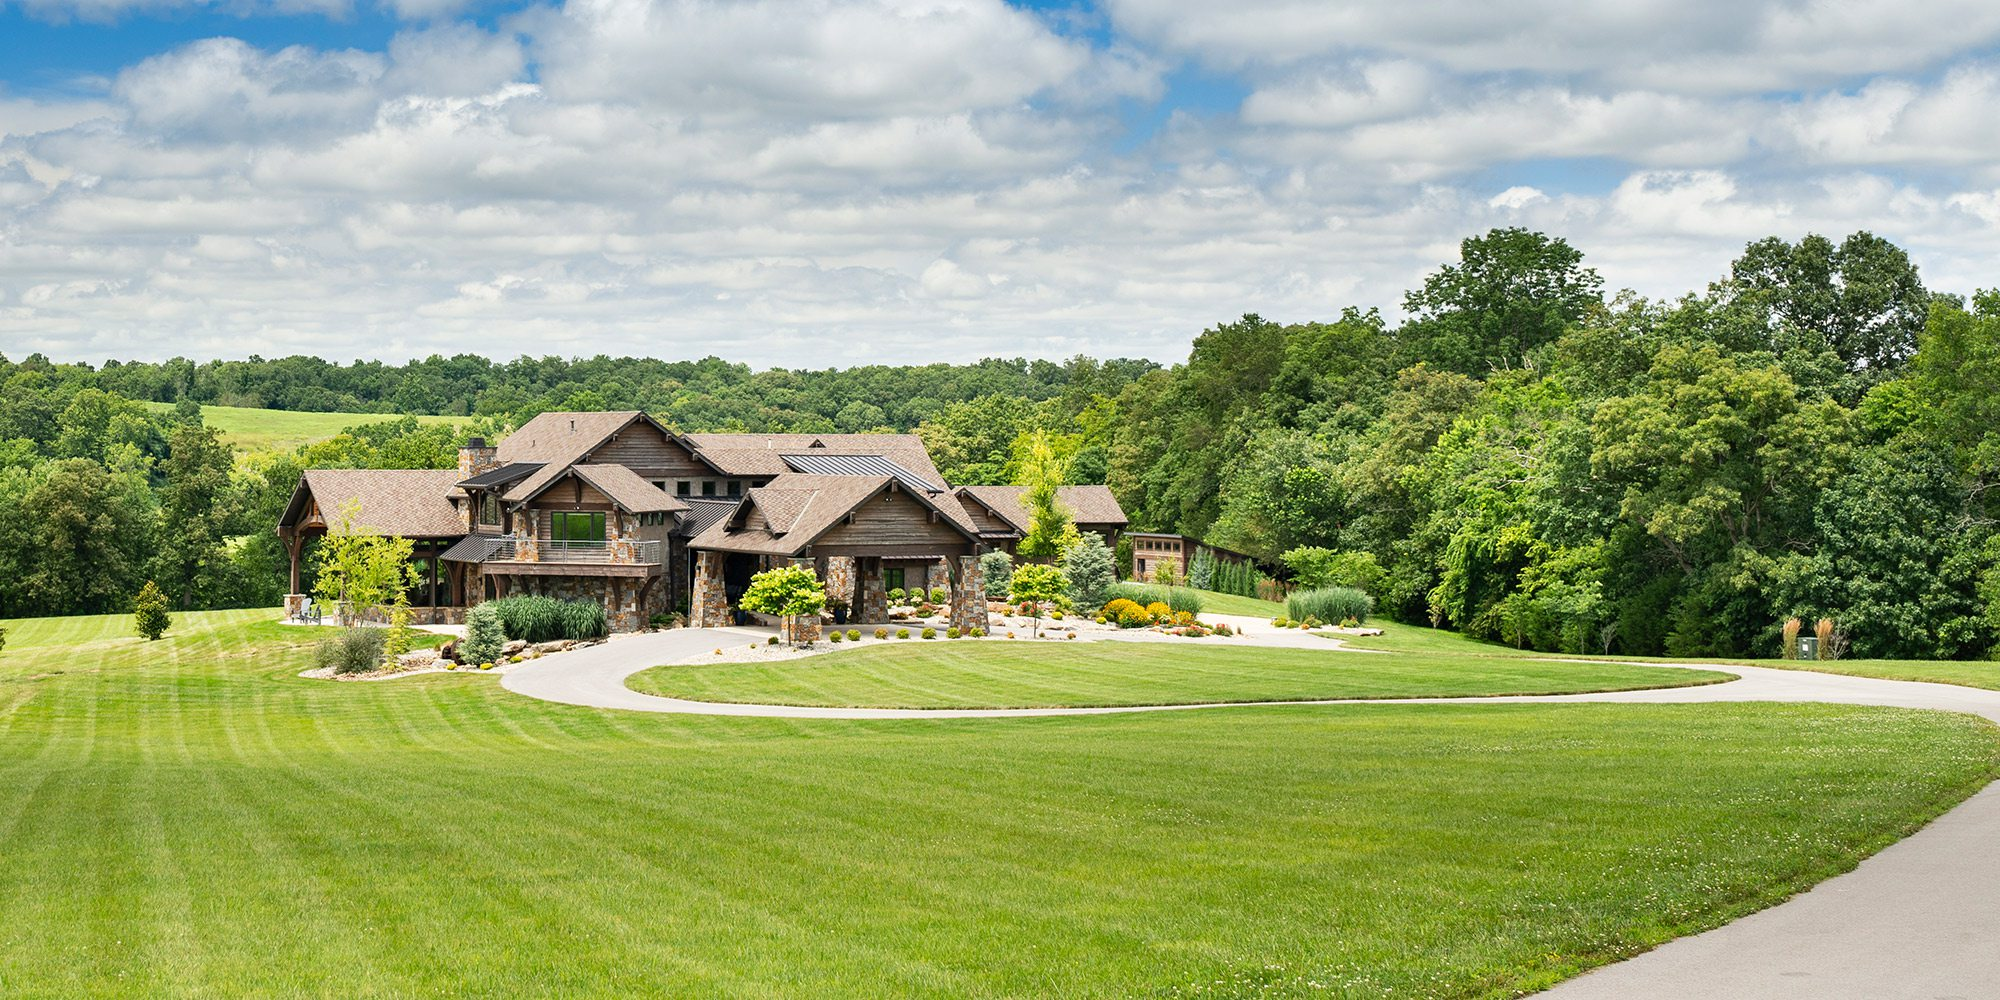 Exterior of the $1 million Home of the Year winner in southwest Missouri